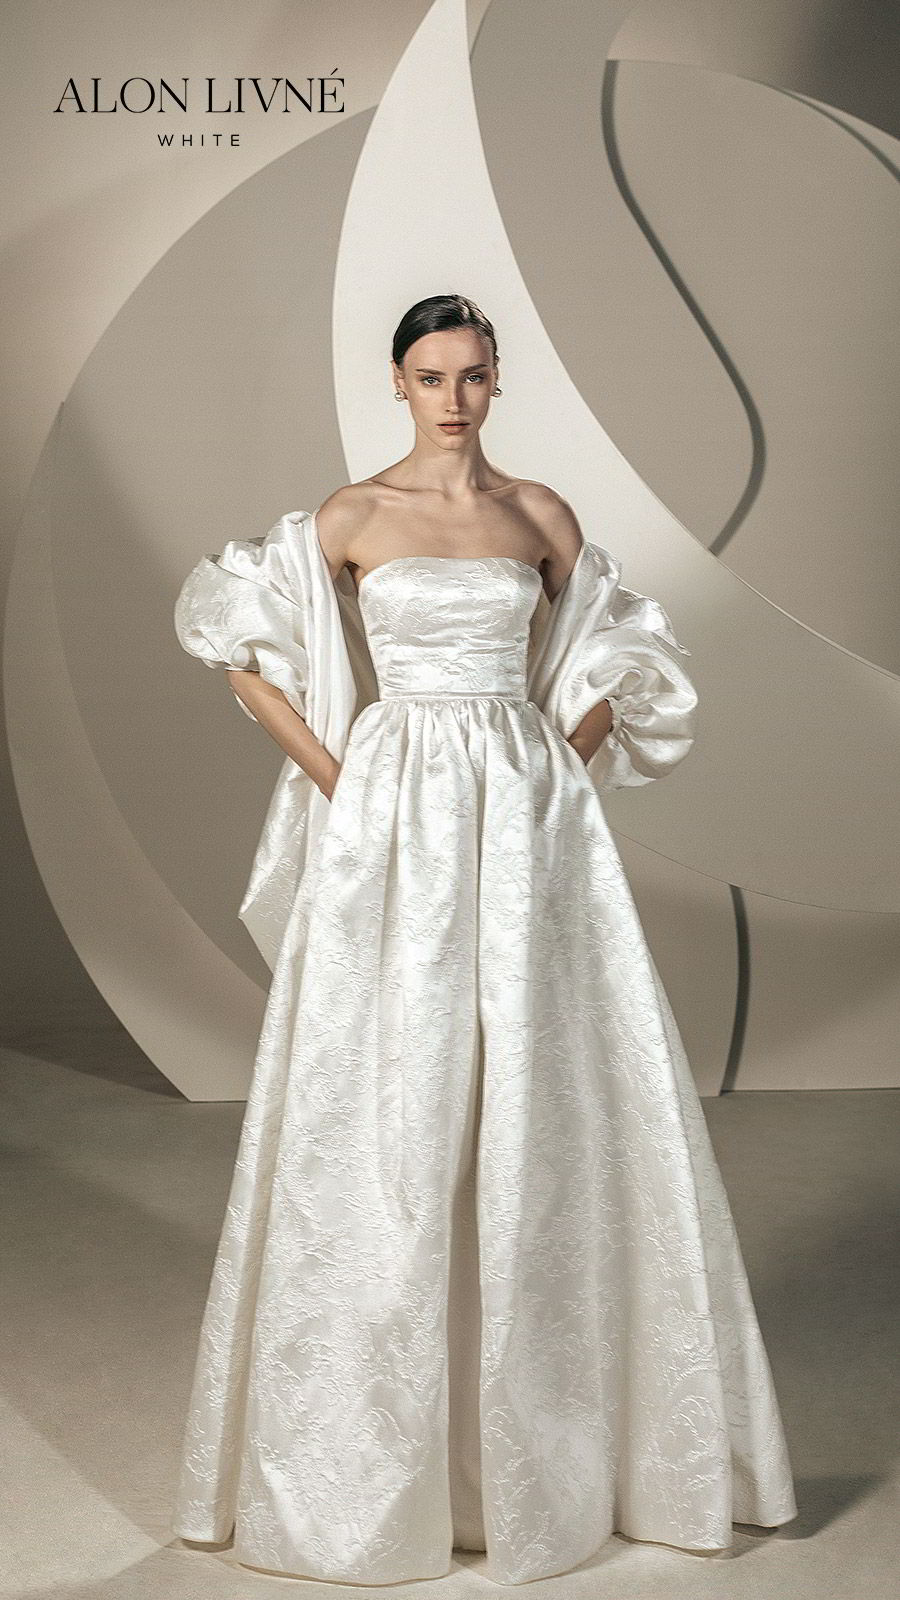 alon livne white spring 2020 bridal strapless straight across a line ball gown embellished simple wedding dress jacket (brenda) elegant modern mv